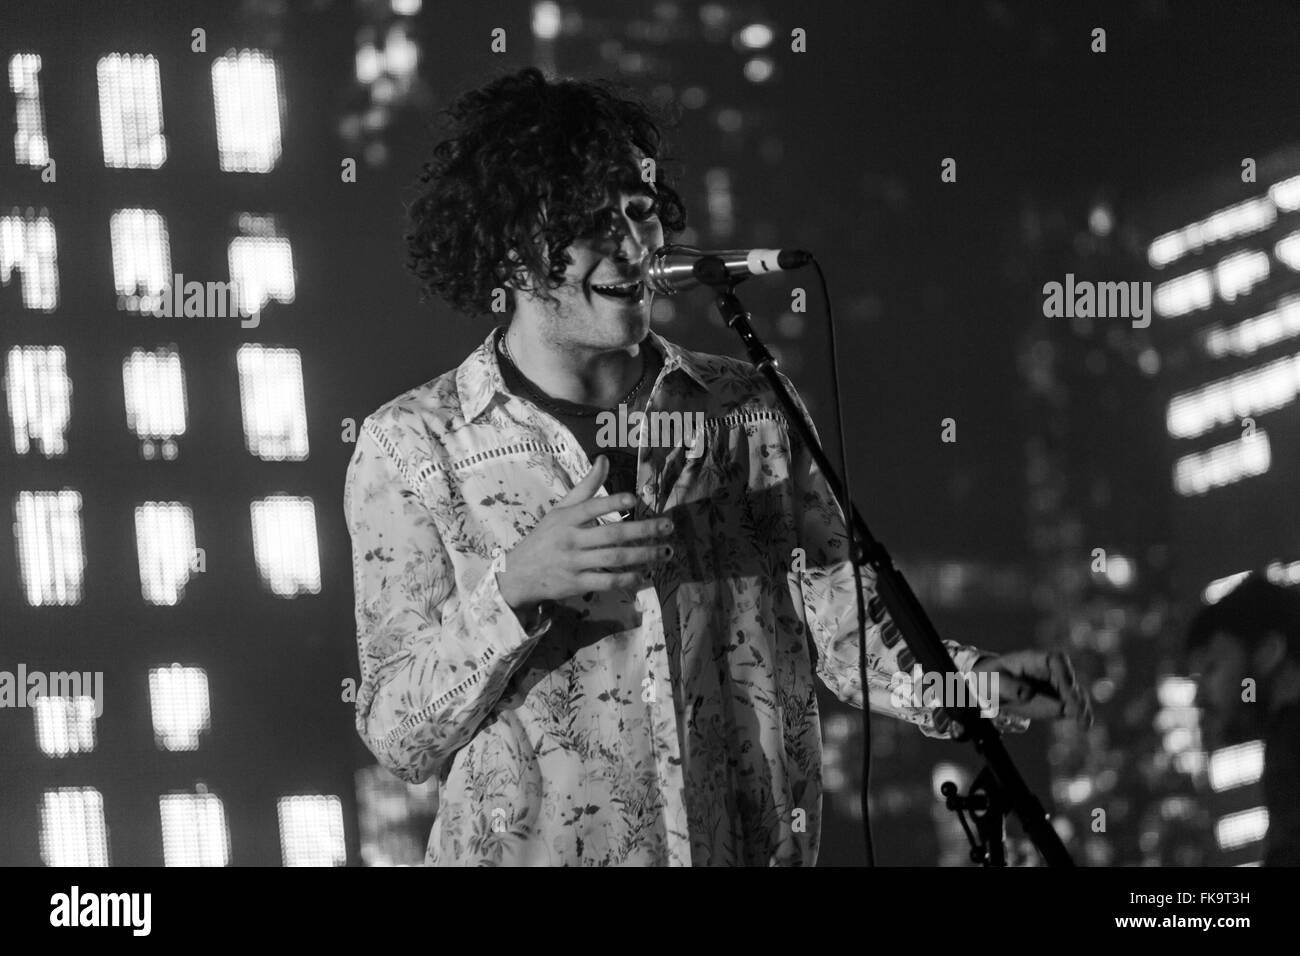 London, UK, 7th March 2016. The 1975 Live Performance at o2 Brixton Academy. © Robert Stainforth/Alamy Live News Stock Photo